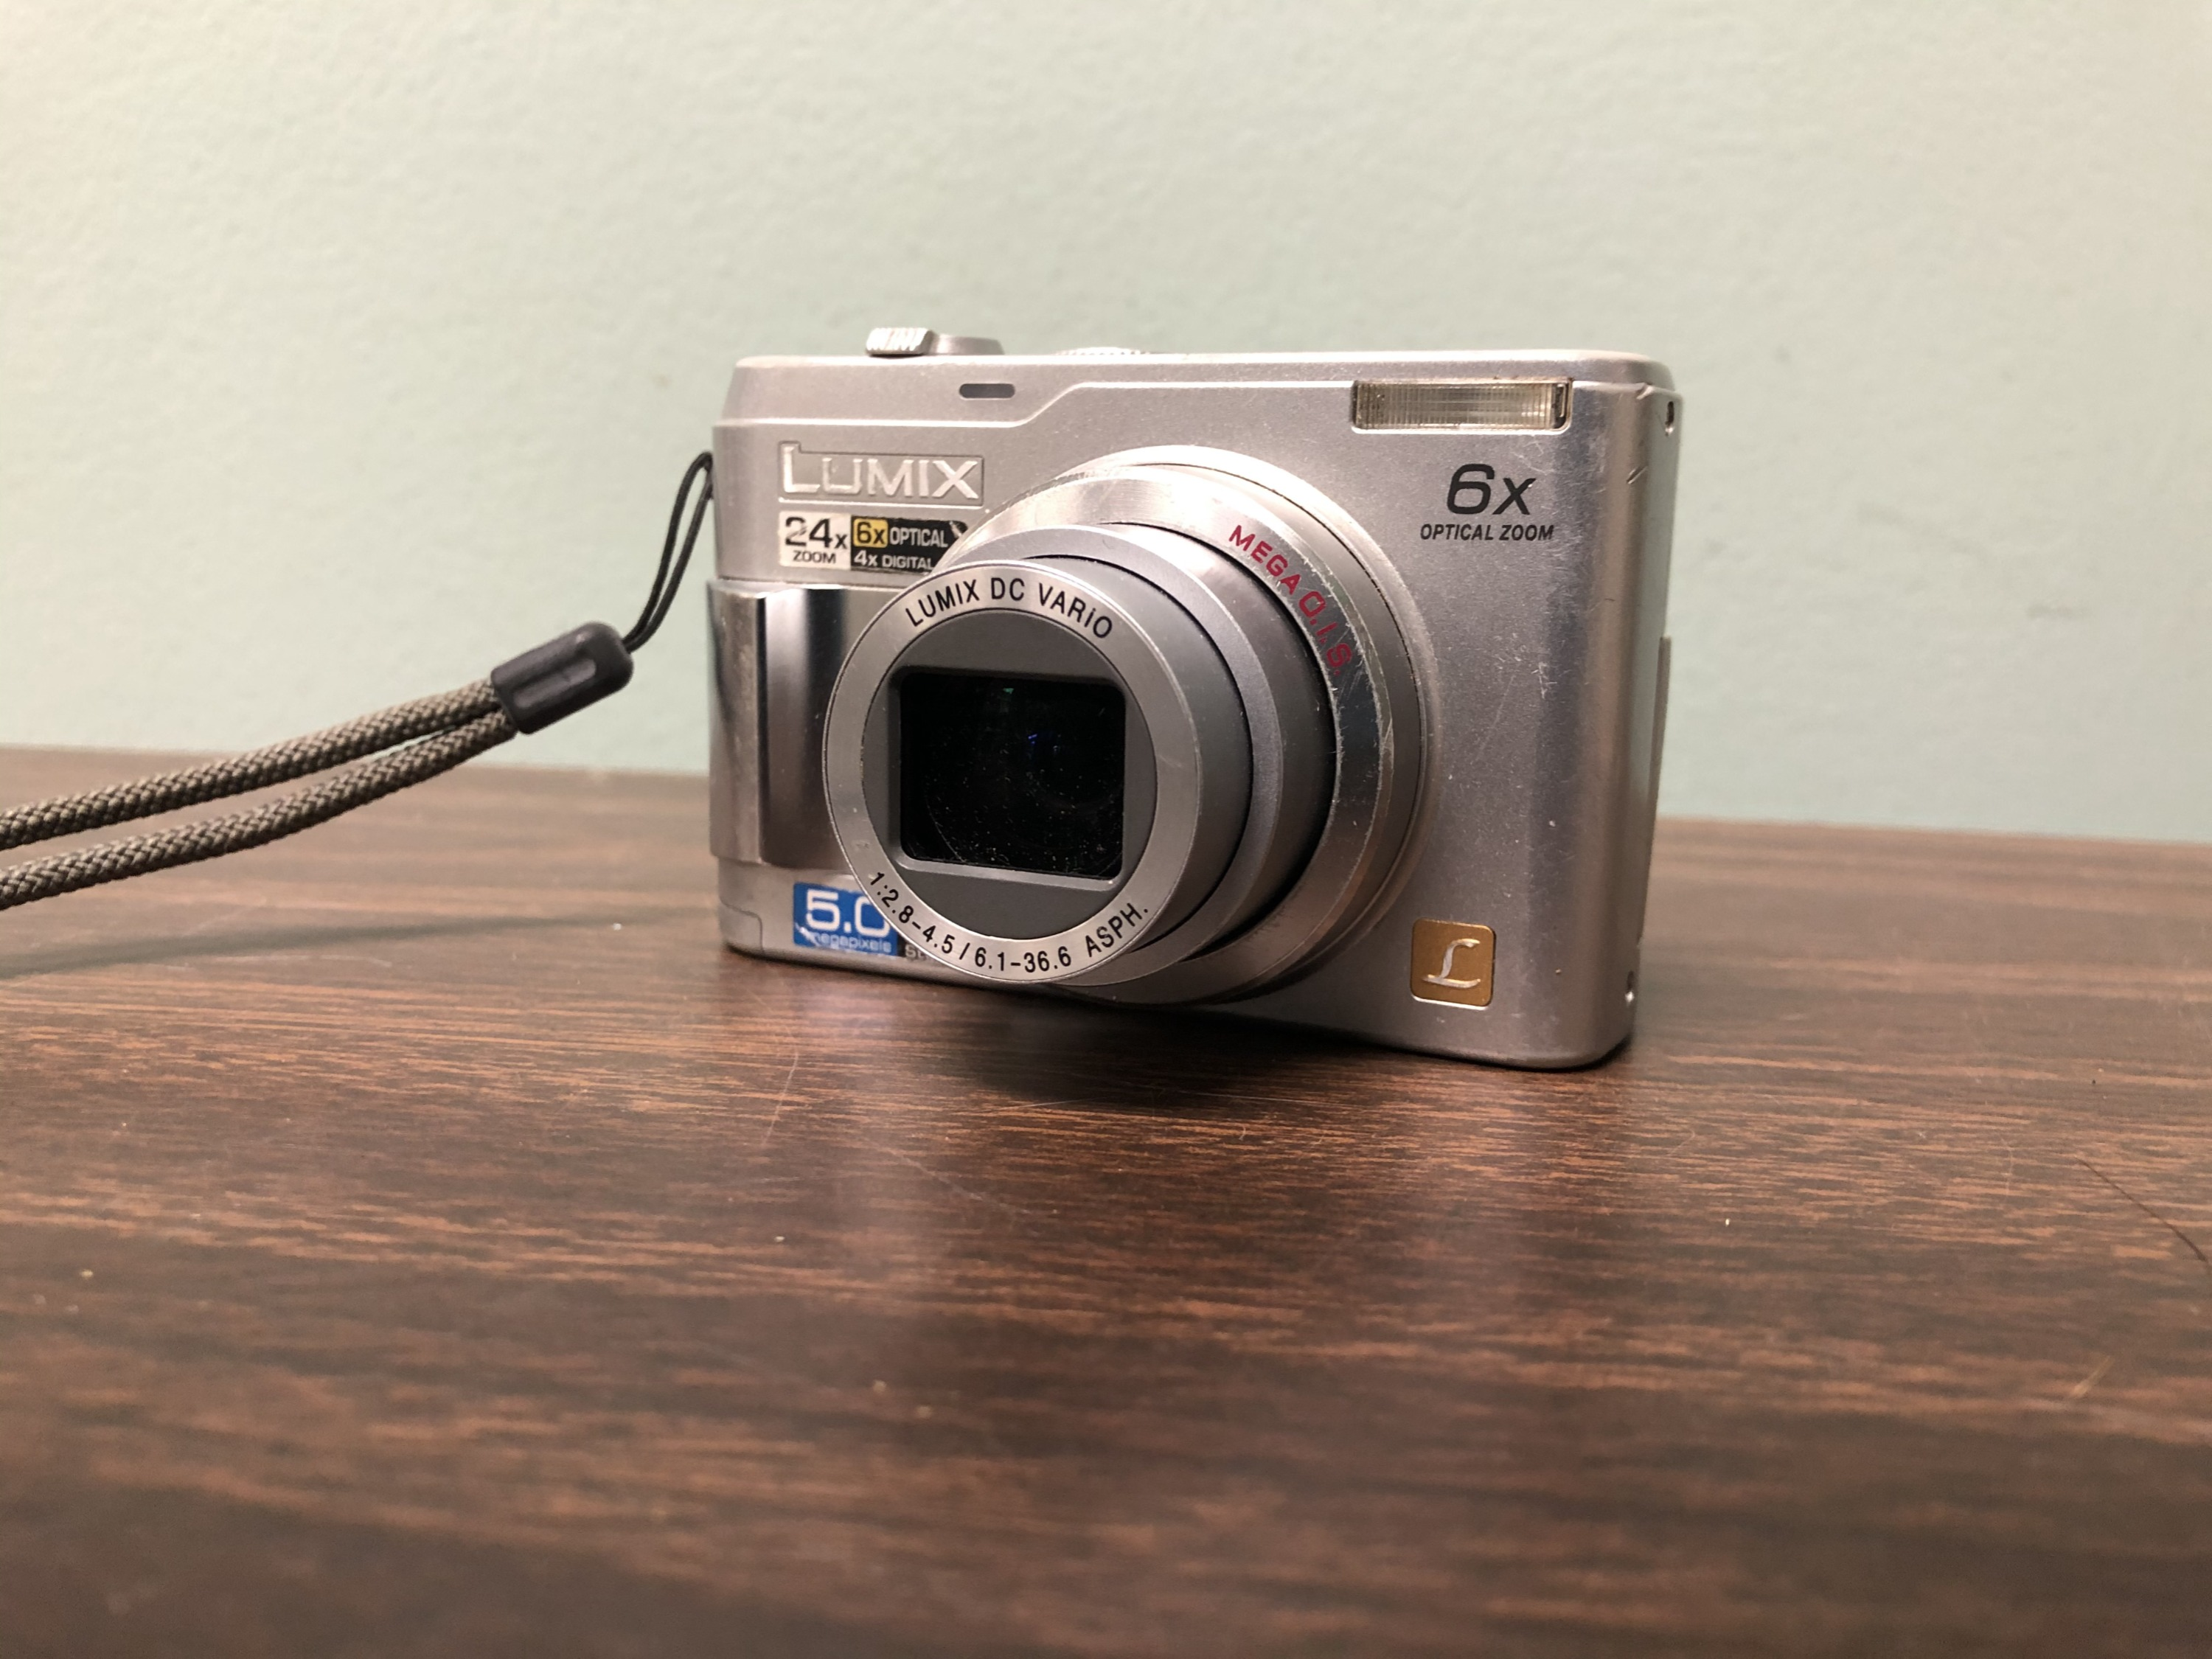 Panasonic Lumix Digital Camera (functional)